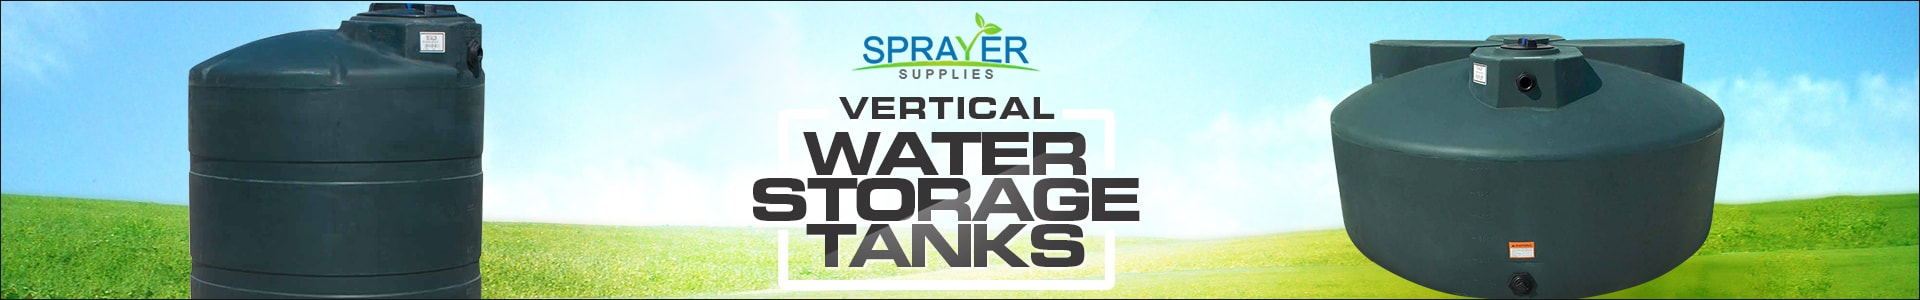 Agriculture & Boom Sprayers - Spraying Systems, Parts